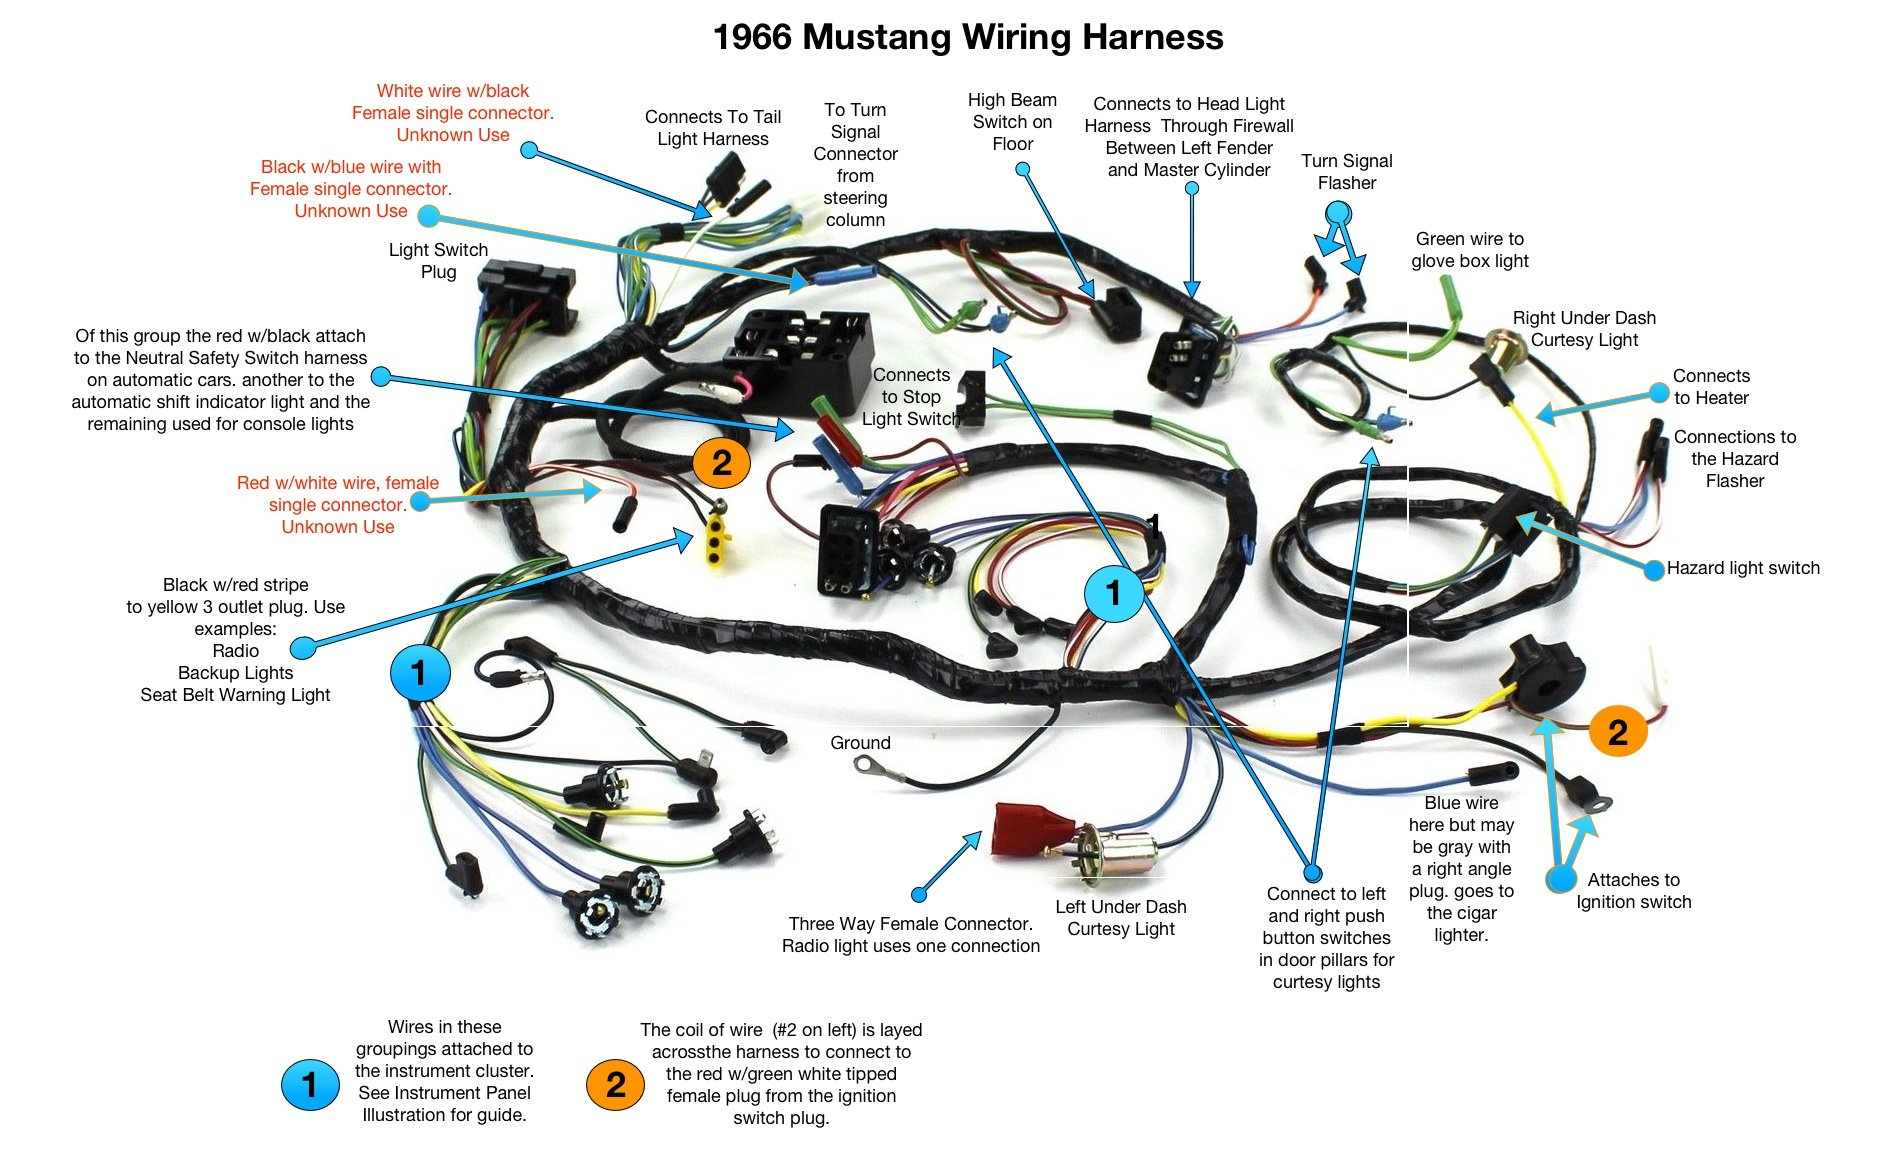 507585d1458686767 66 wiring harness diagram 66 mustang wiring harness harness wiring diagram jeep wrangler wiring harness diagram \u2022 free ford wiring harness connectors at webbmarketing.co